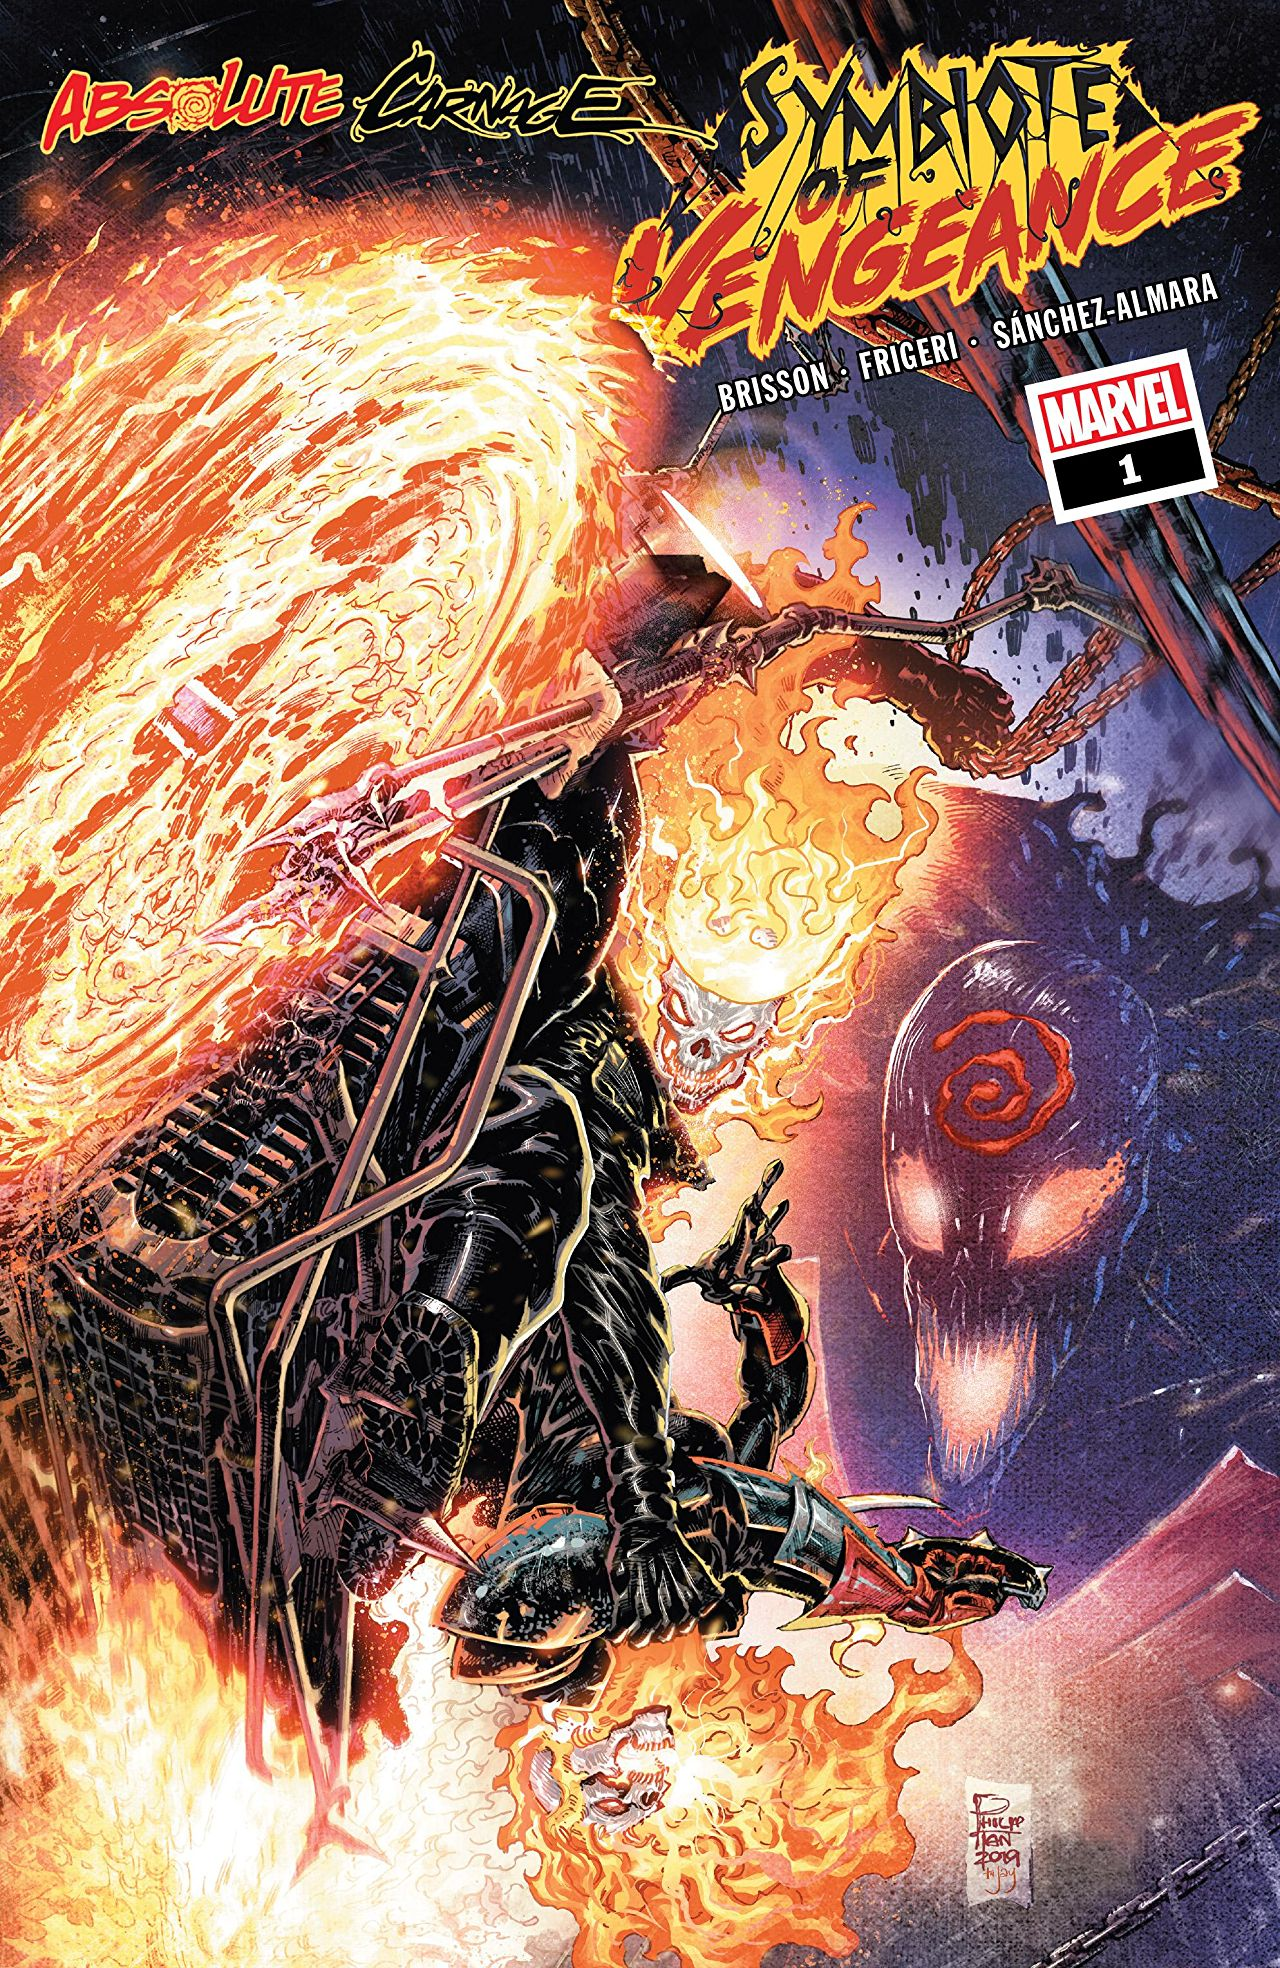 Absolute Carnage: Symbiote of Vengeance Vol 1 1